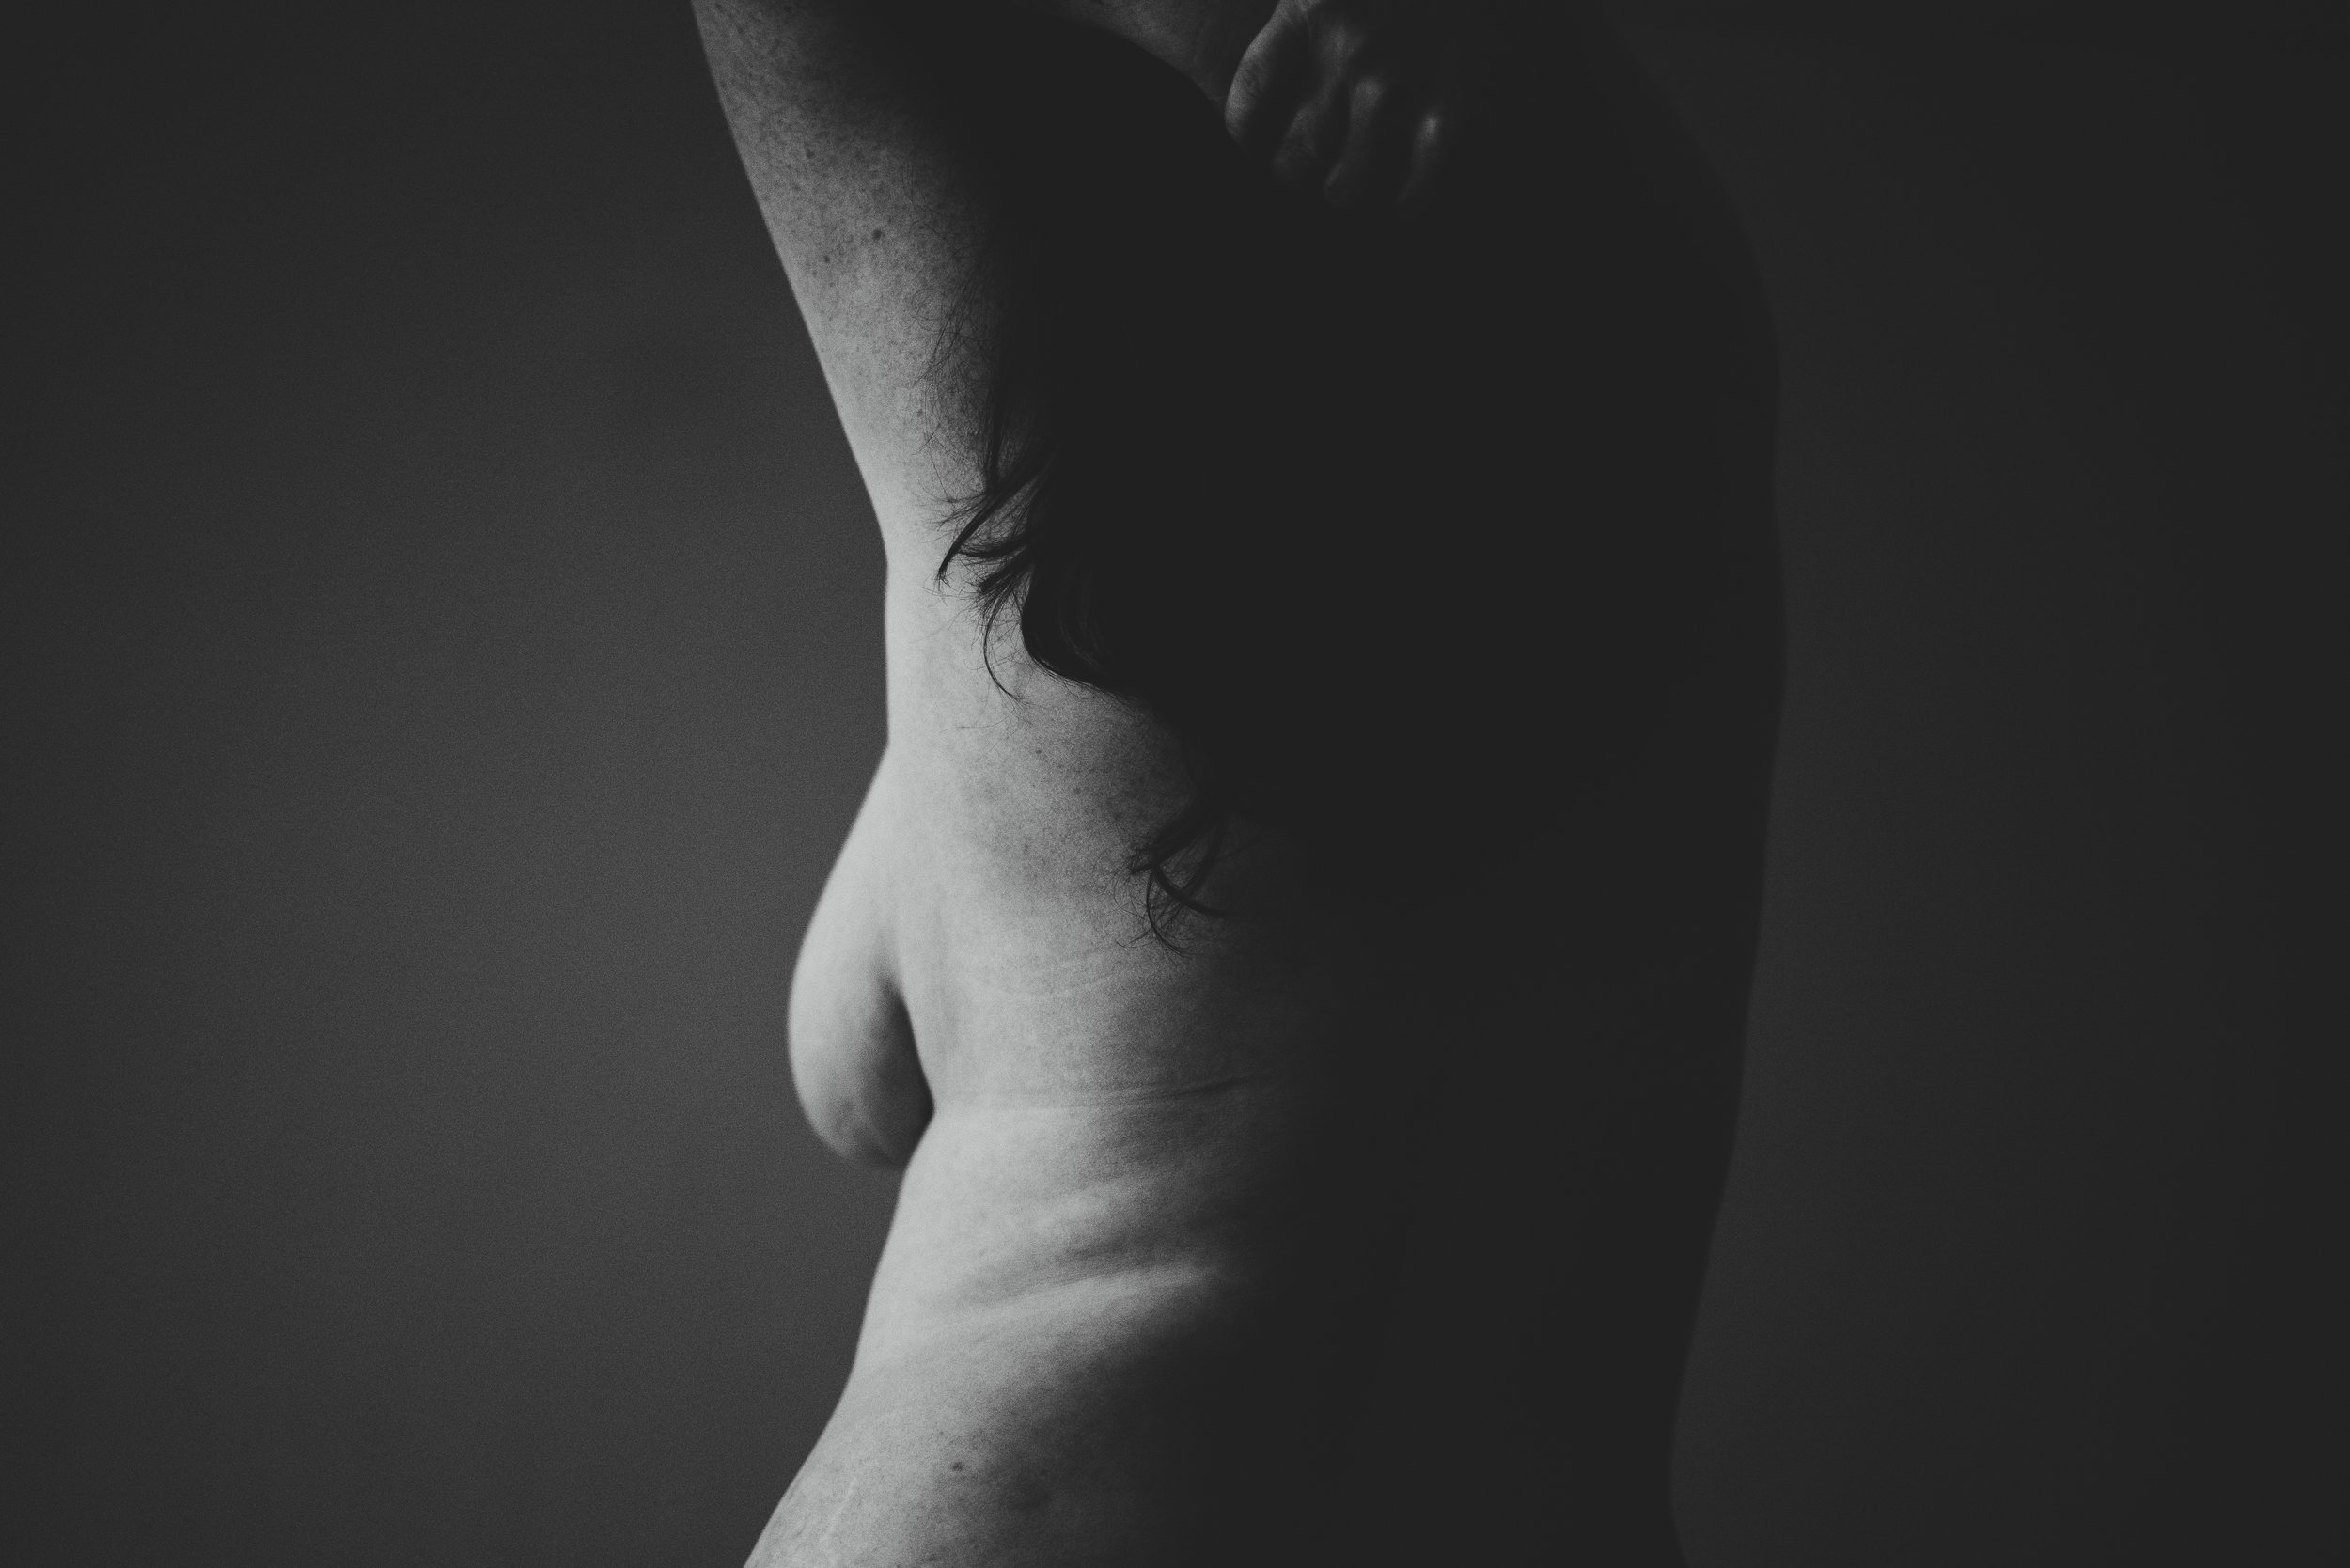 Breast size and spine  pain